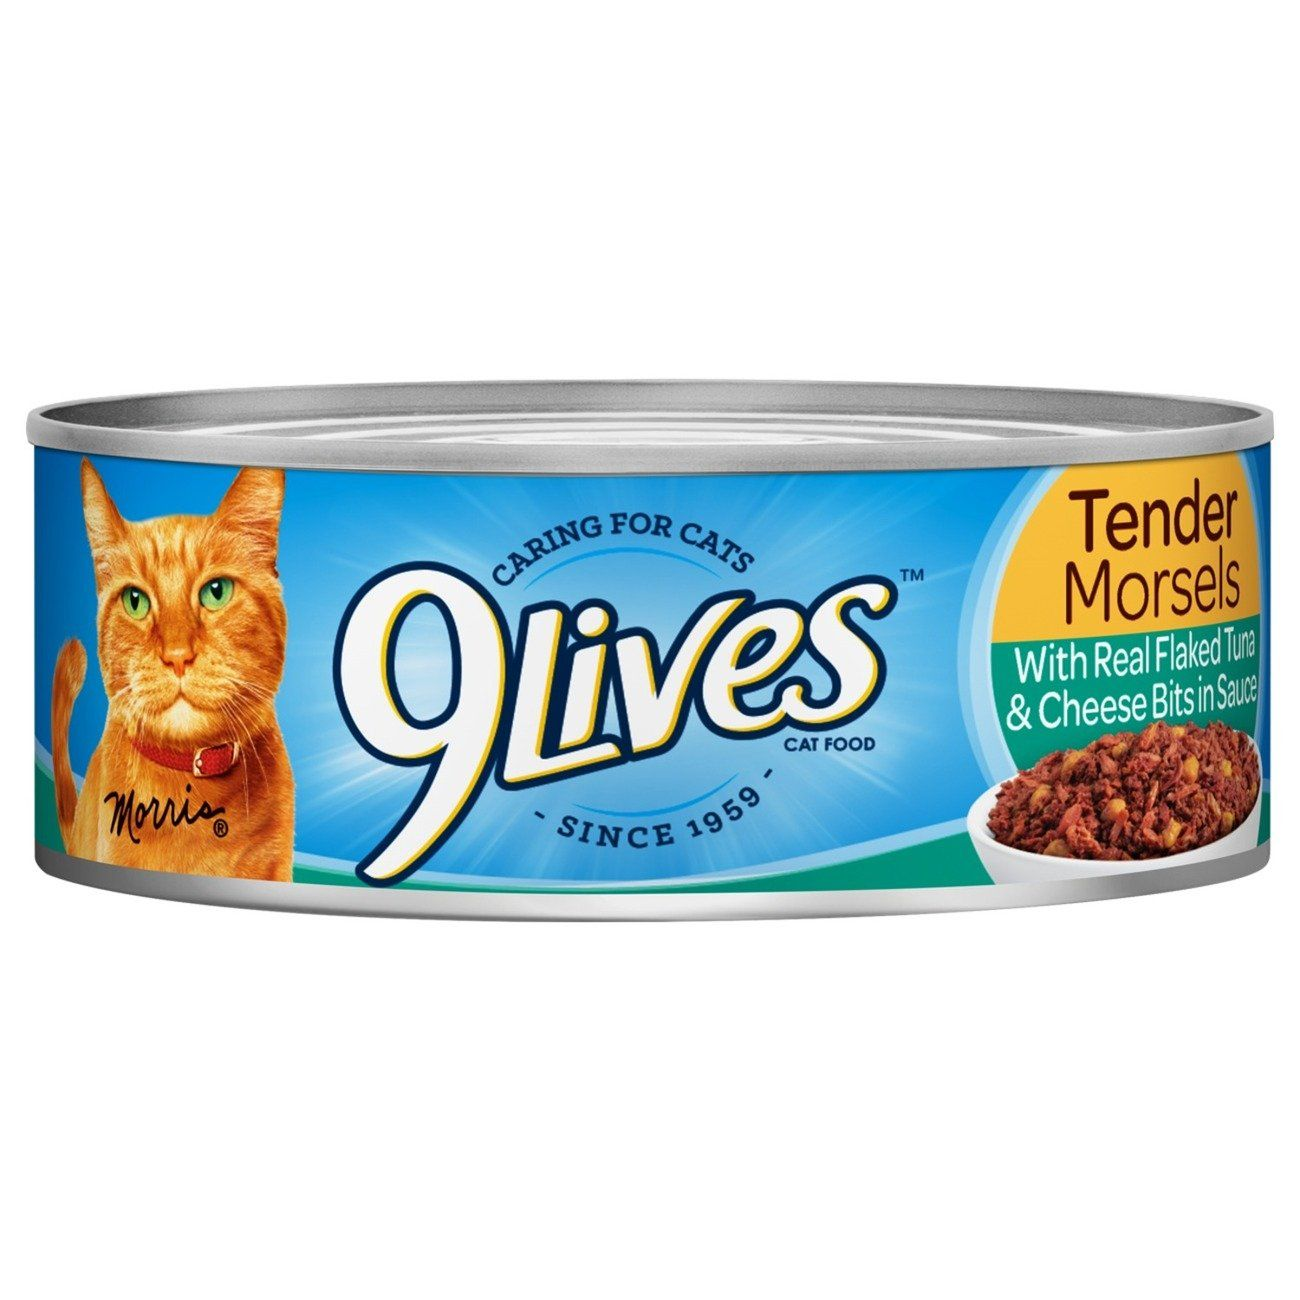 9Lives Tender Morsels With Real Flaked Tuna and Egg Bits